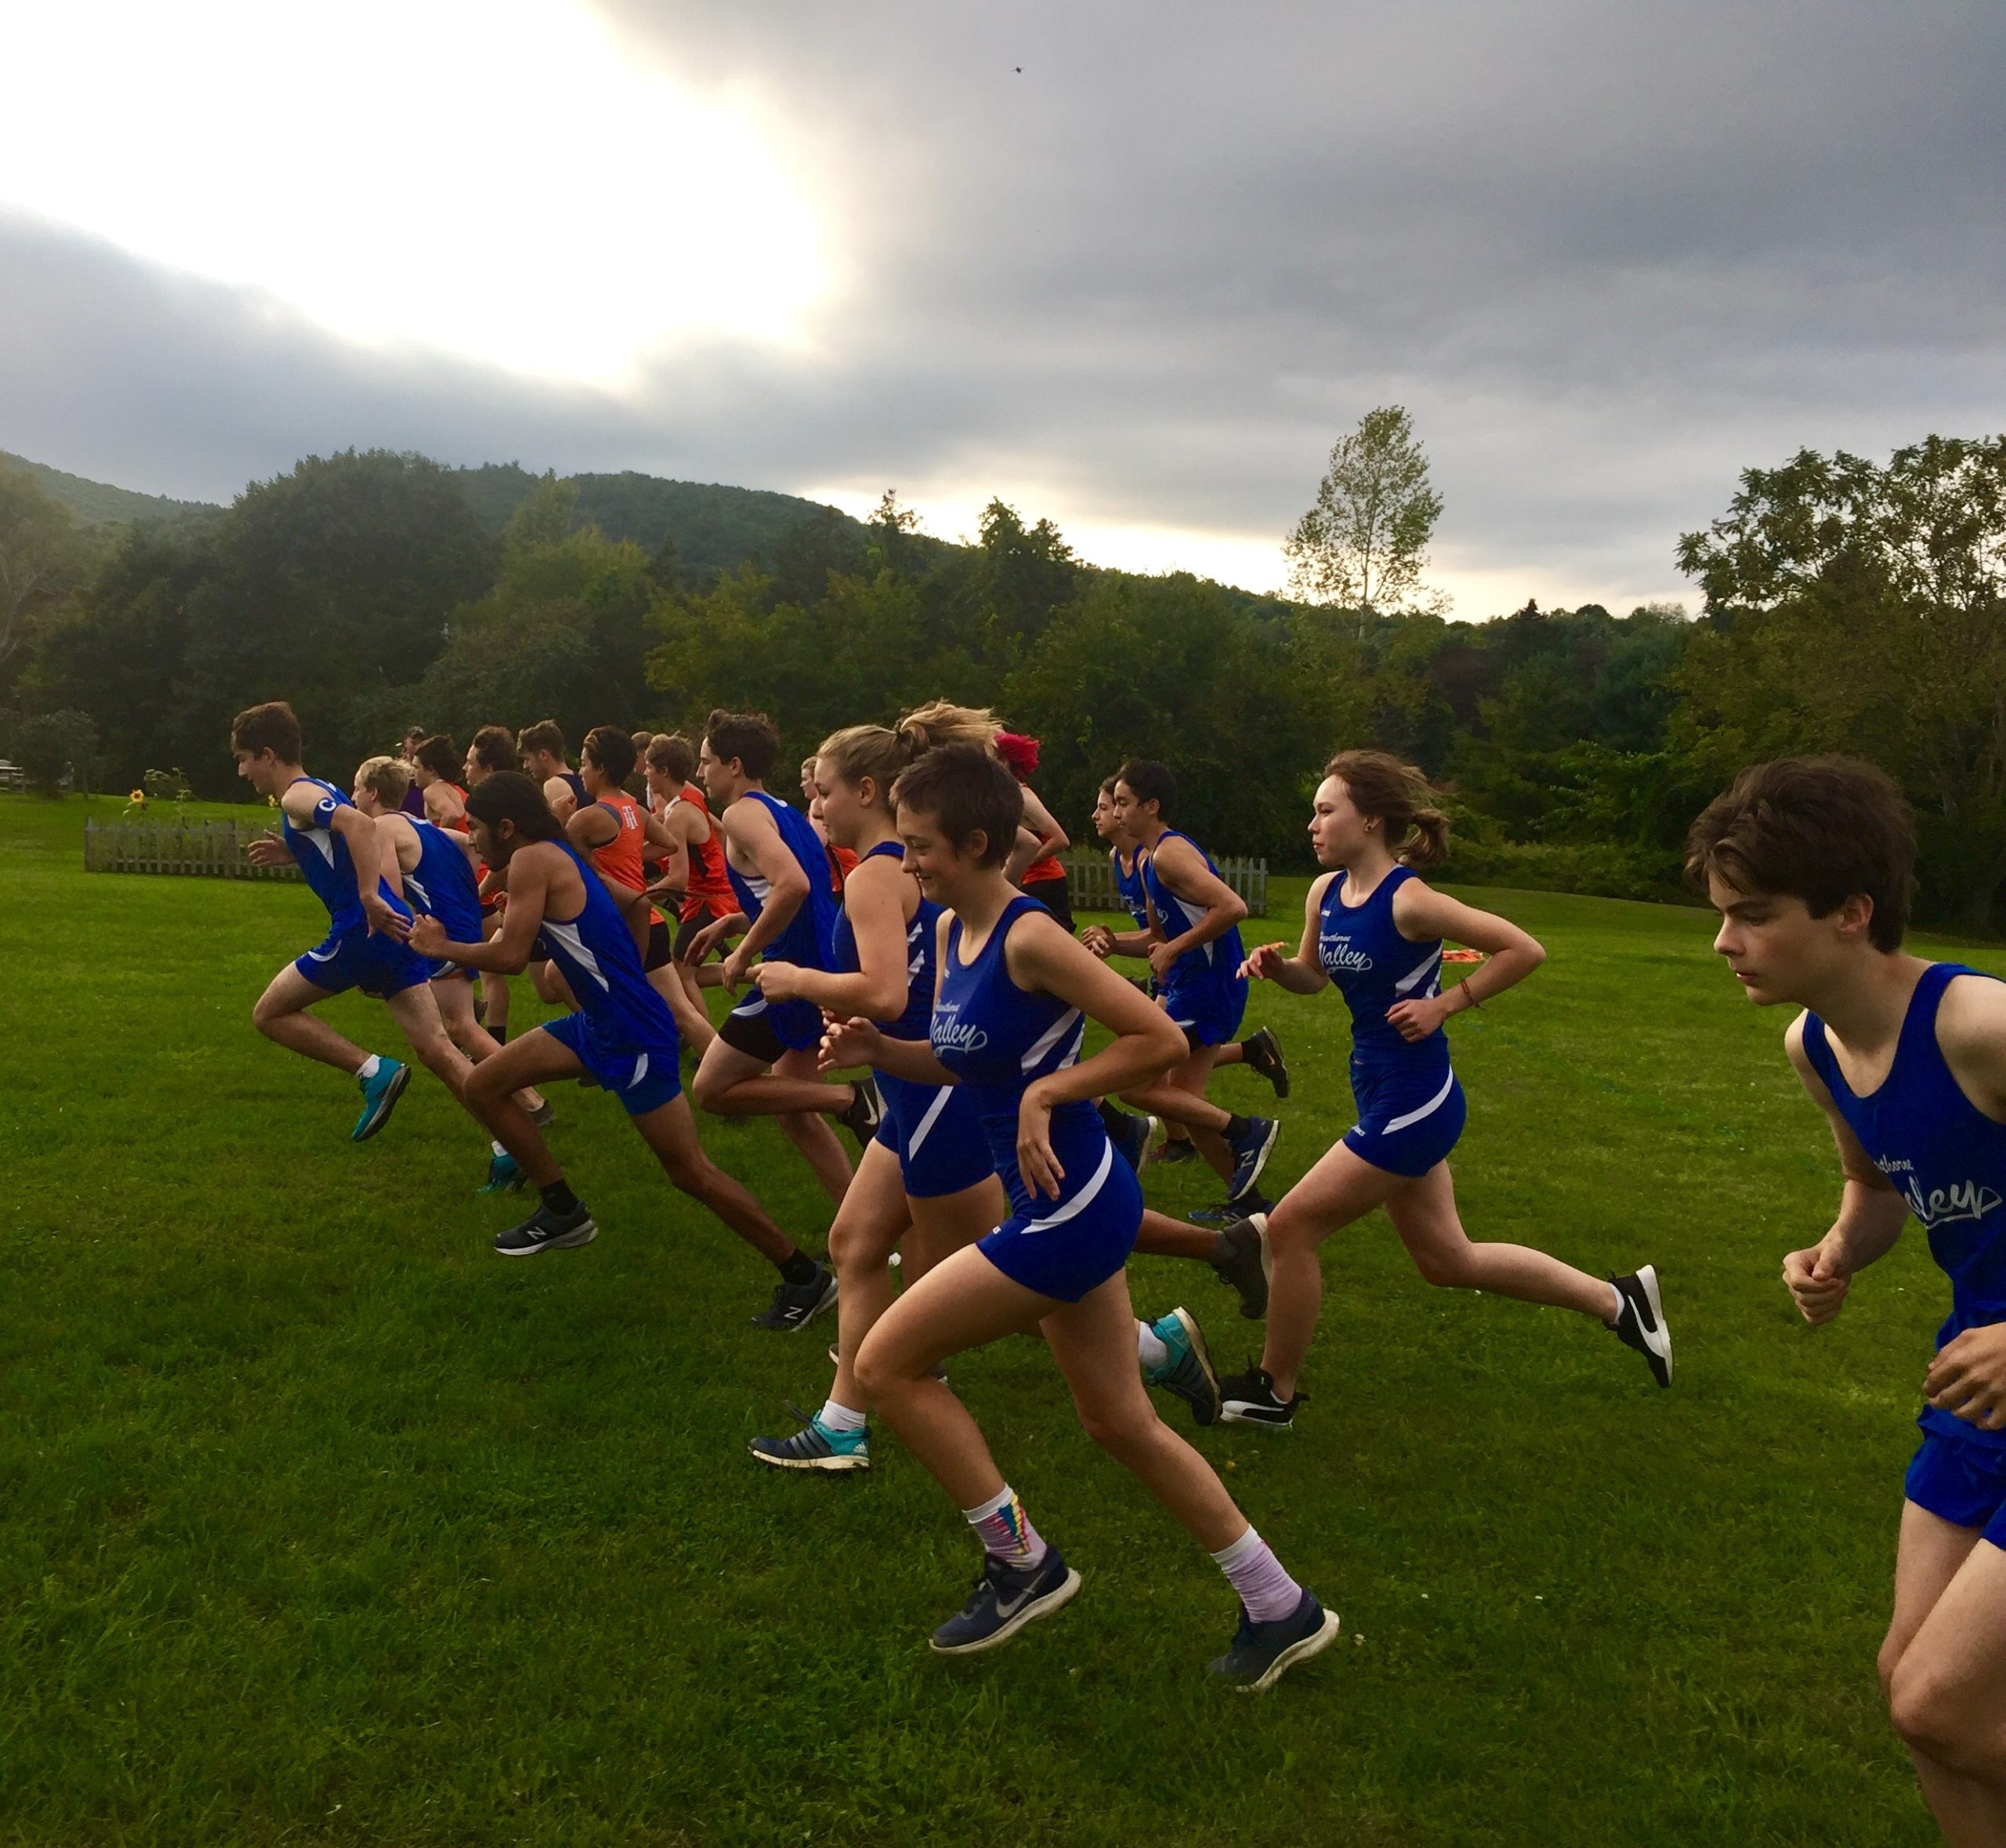 ...and they're off - the cross country team in action at this past Tuesday's meet